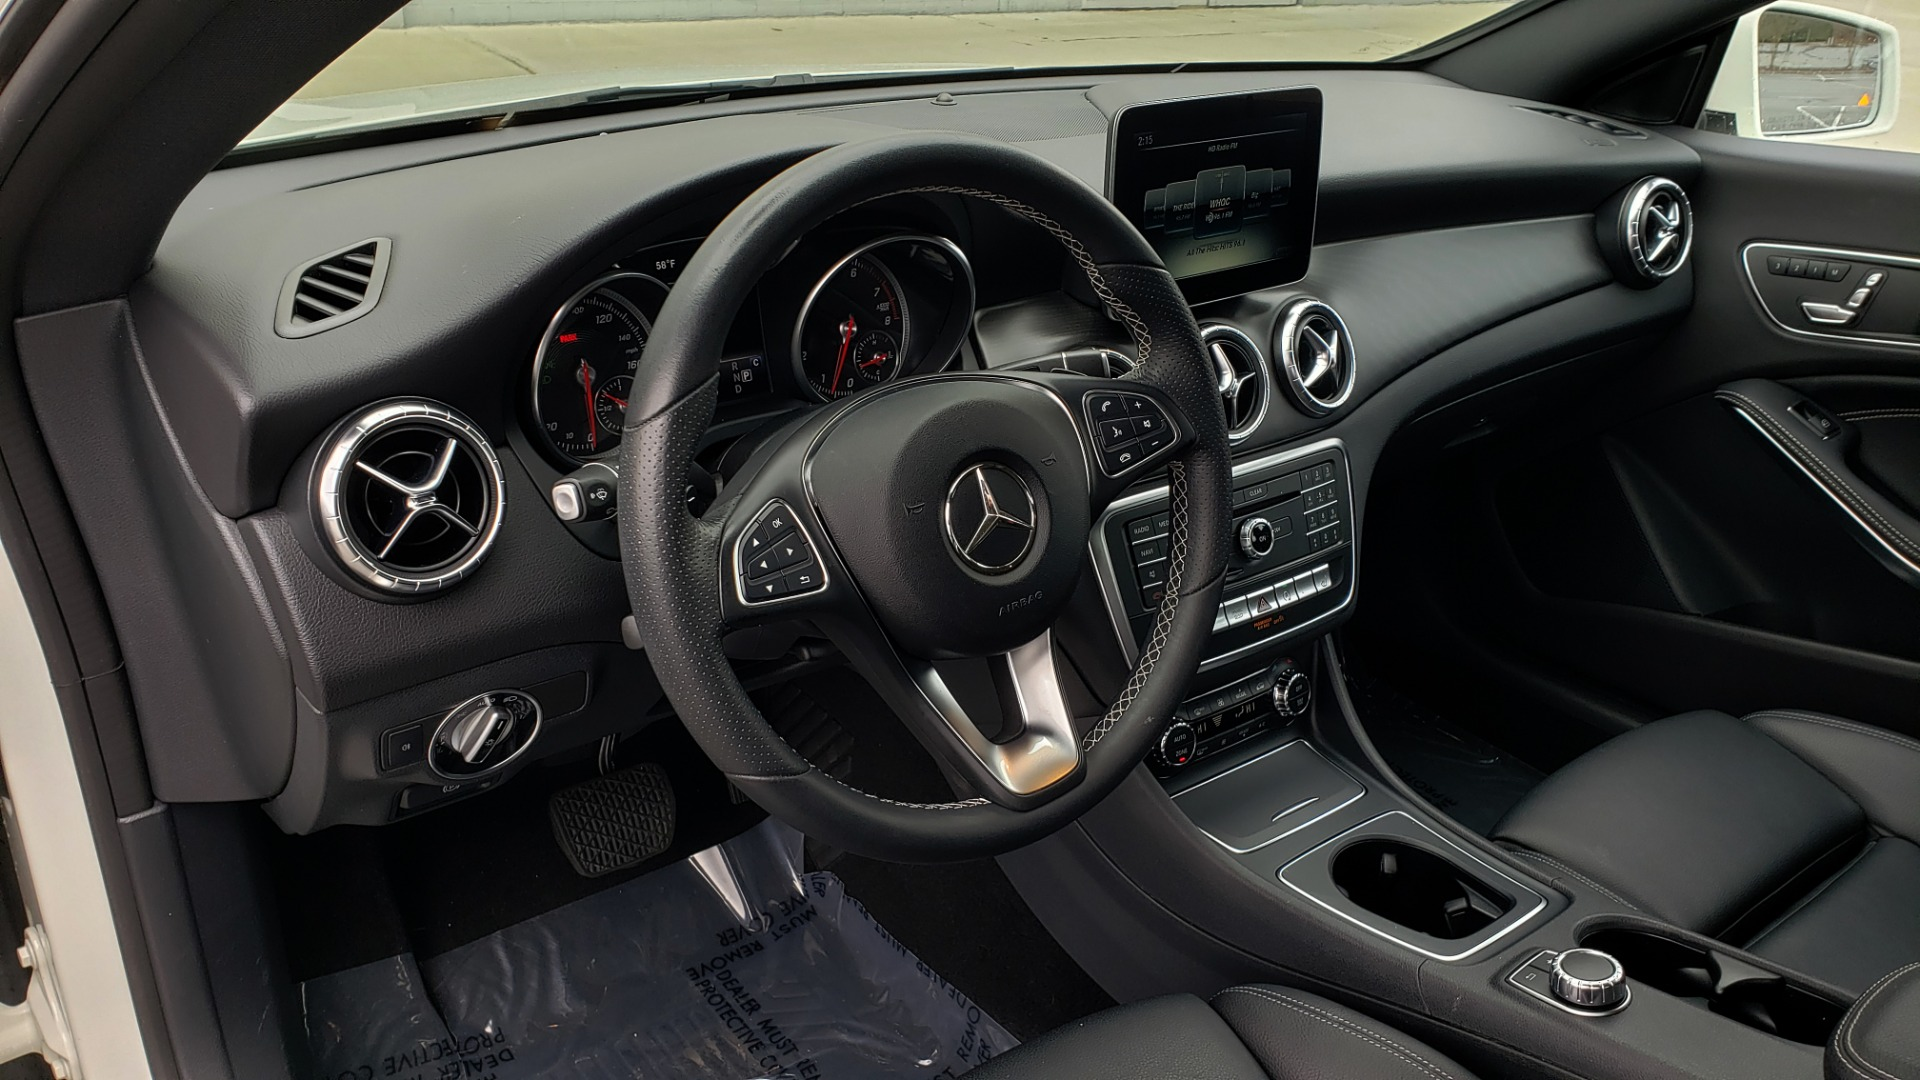 Used 2018 Mercedes-Benz CLA 250 PREMIUM / NAV / PANO-ROOF / APPLE CARPLAY / REARVIEW for sale $23,995 at Formula Imports in Charlotte NC 28227 35